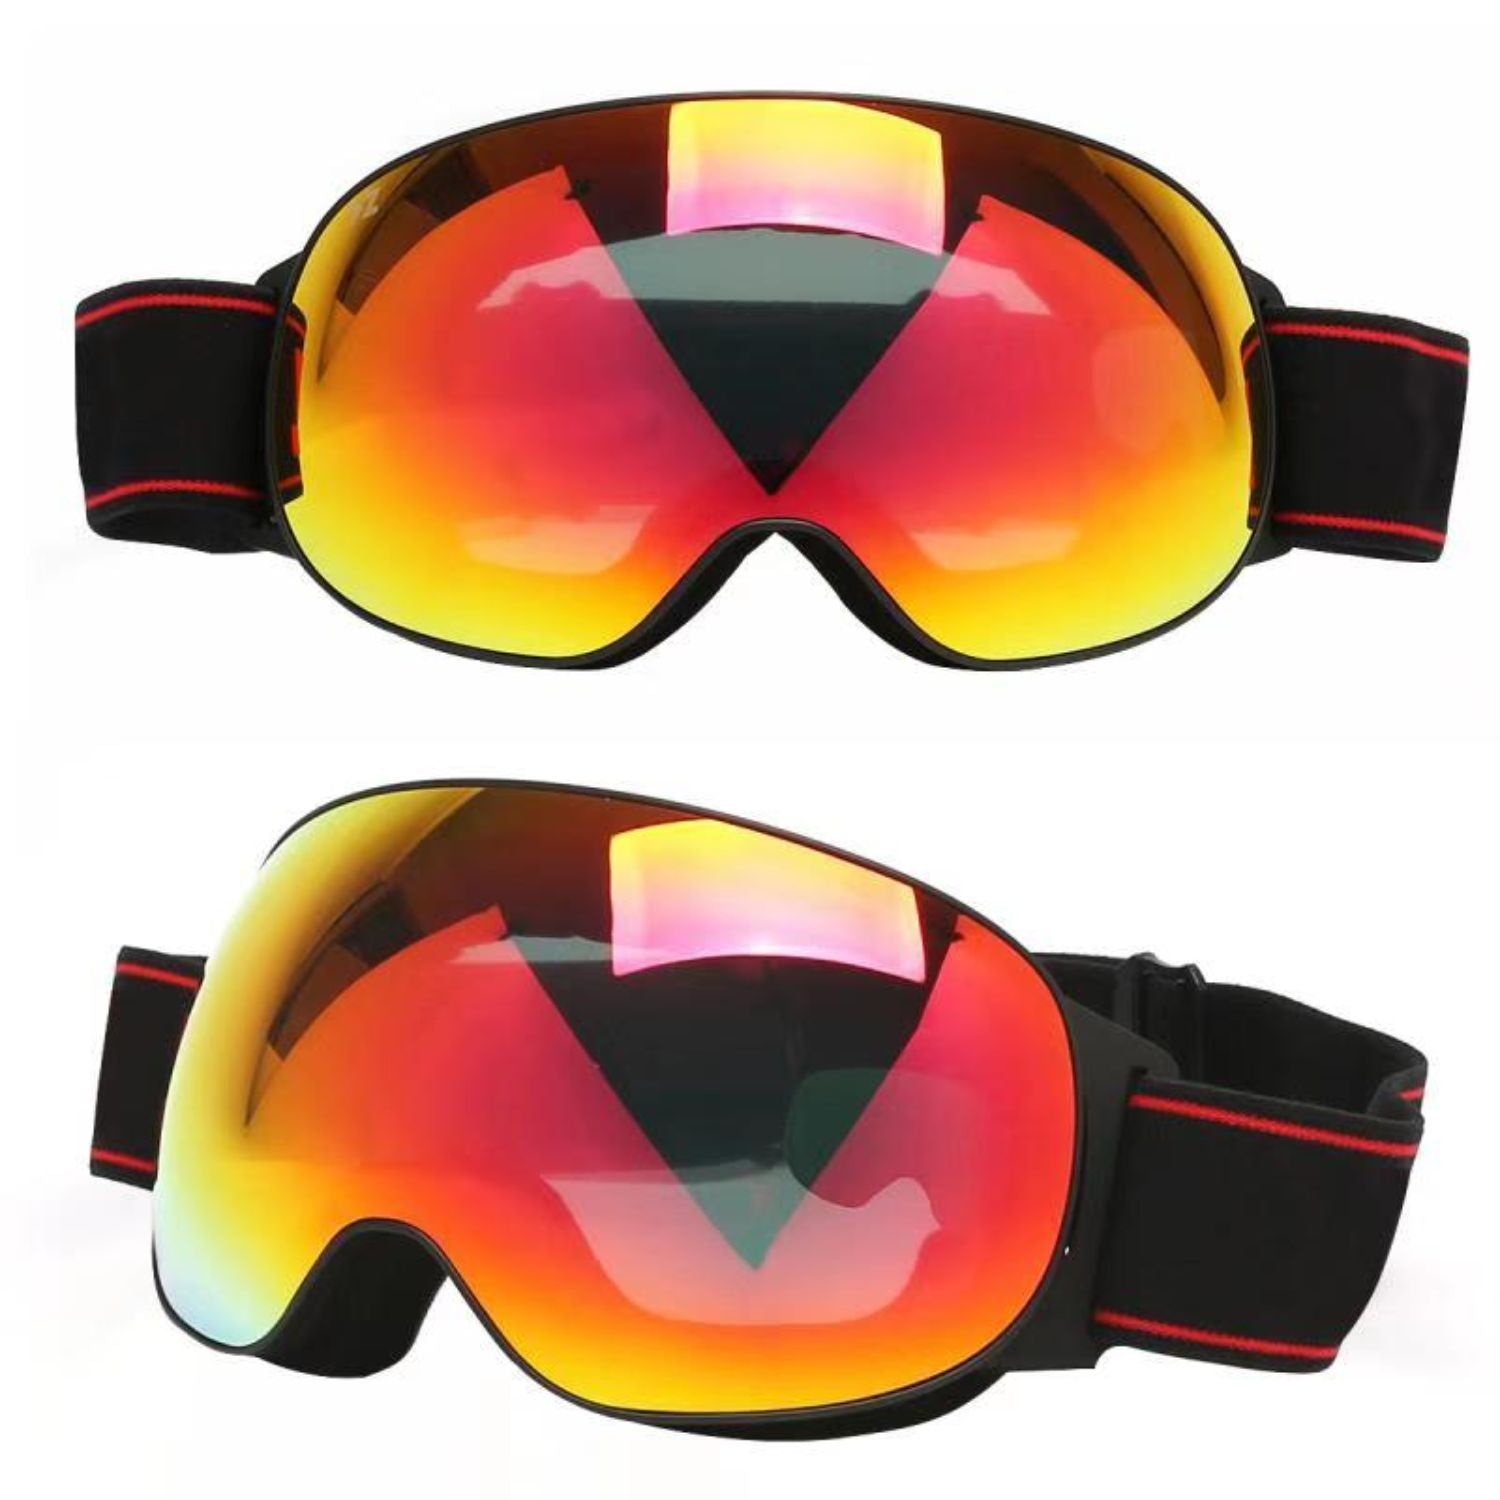 SG07 - Snowboard Ski UV Protection Goggles for Men and Women